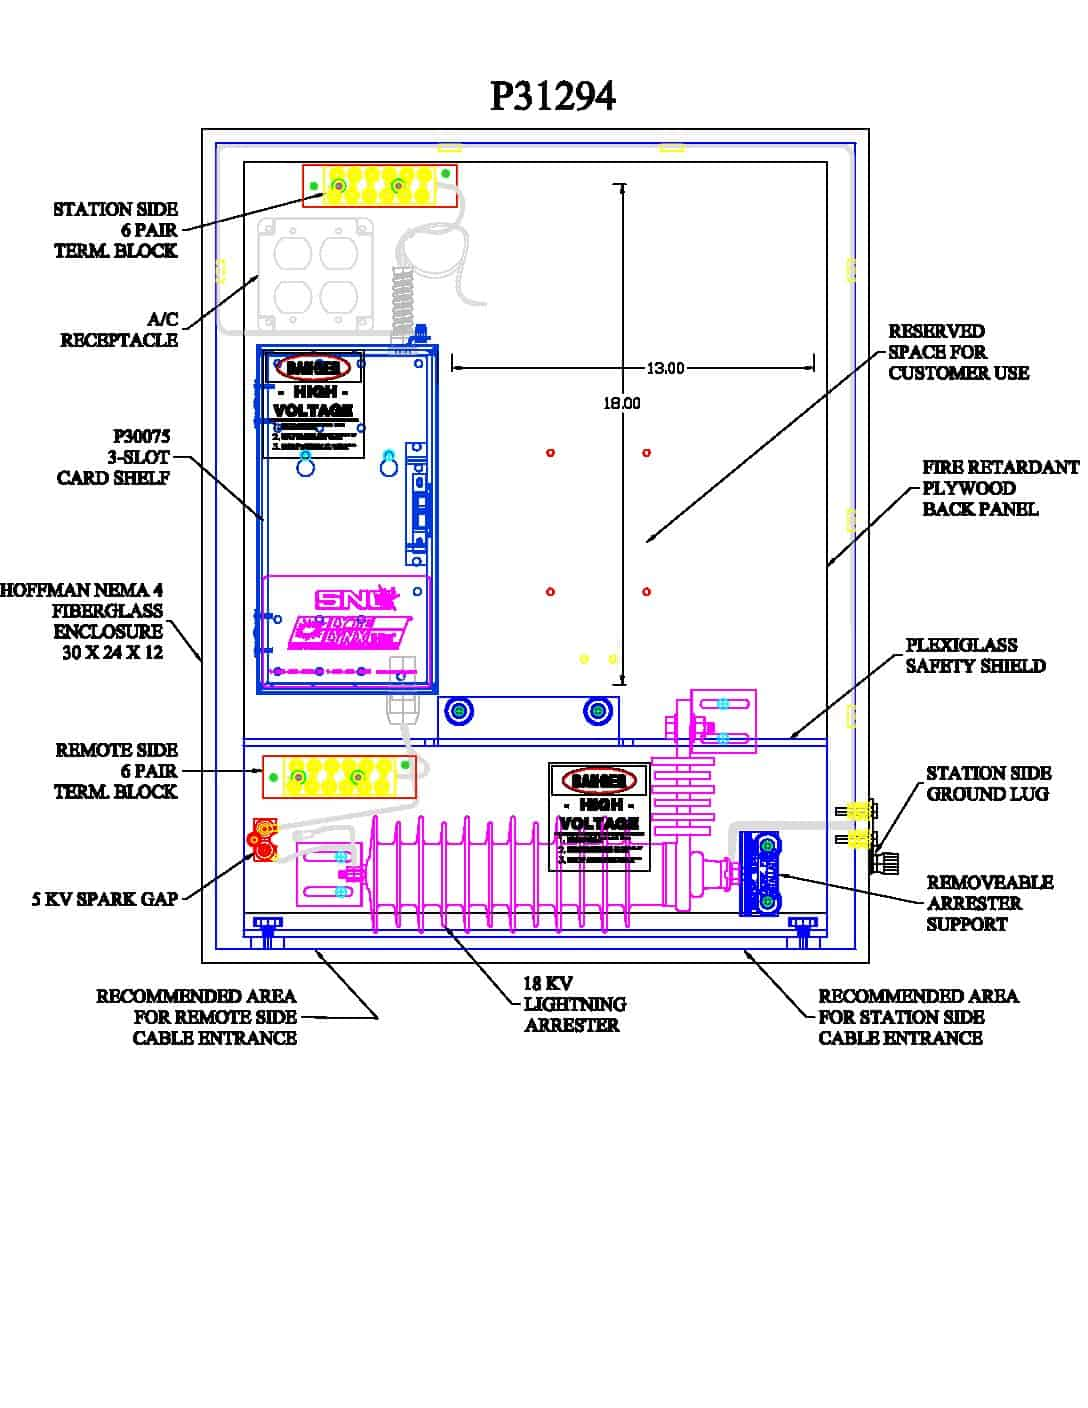 P31294 Turnkey Protection Packages - 3 slot PDF thumbnail